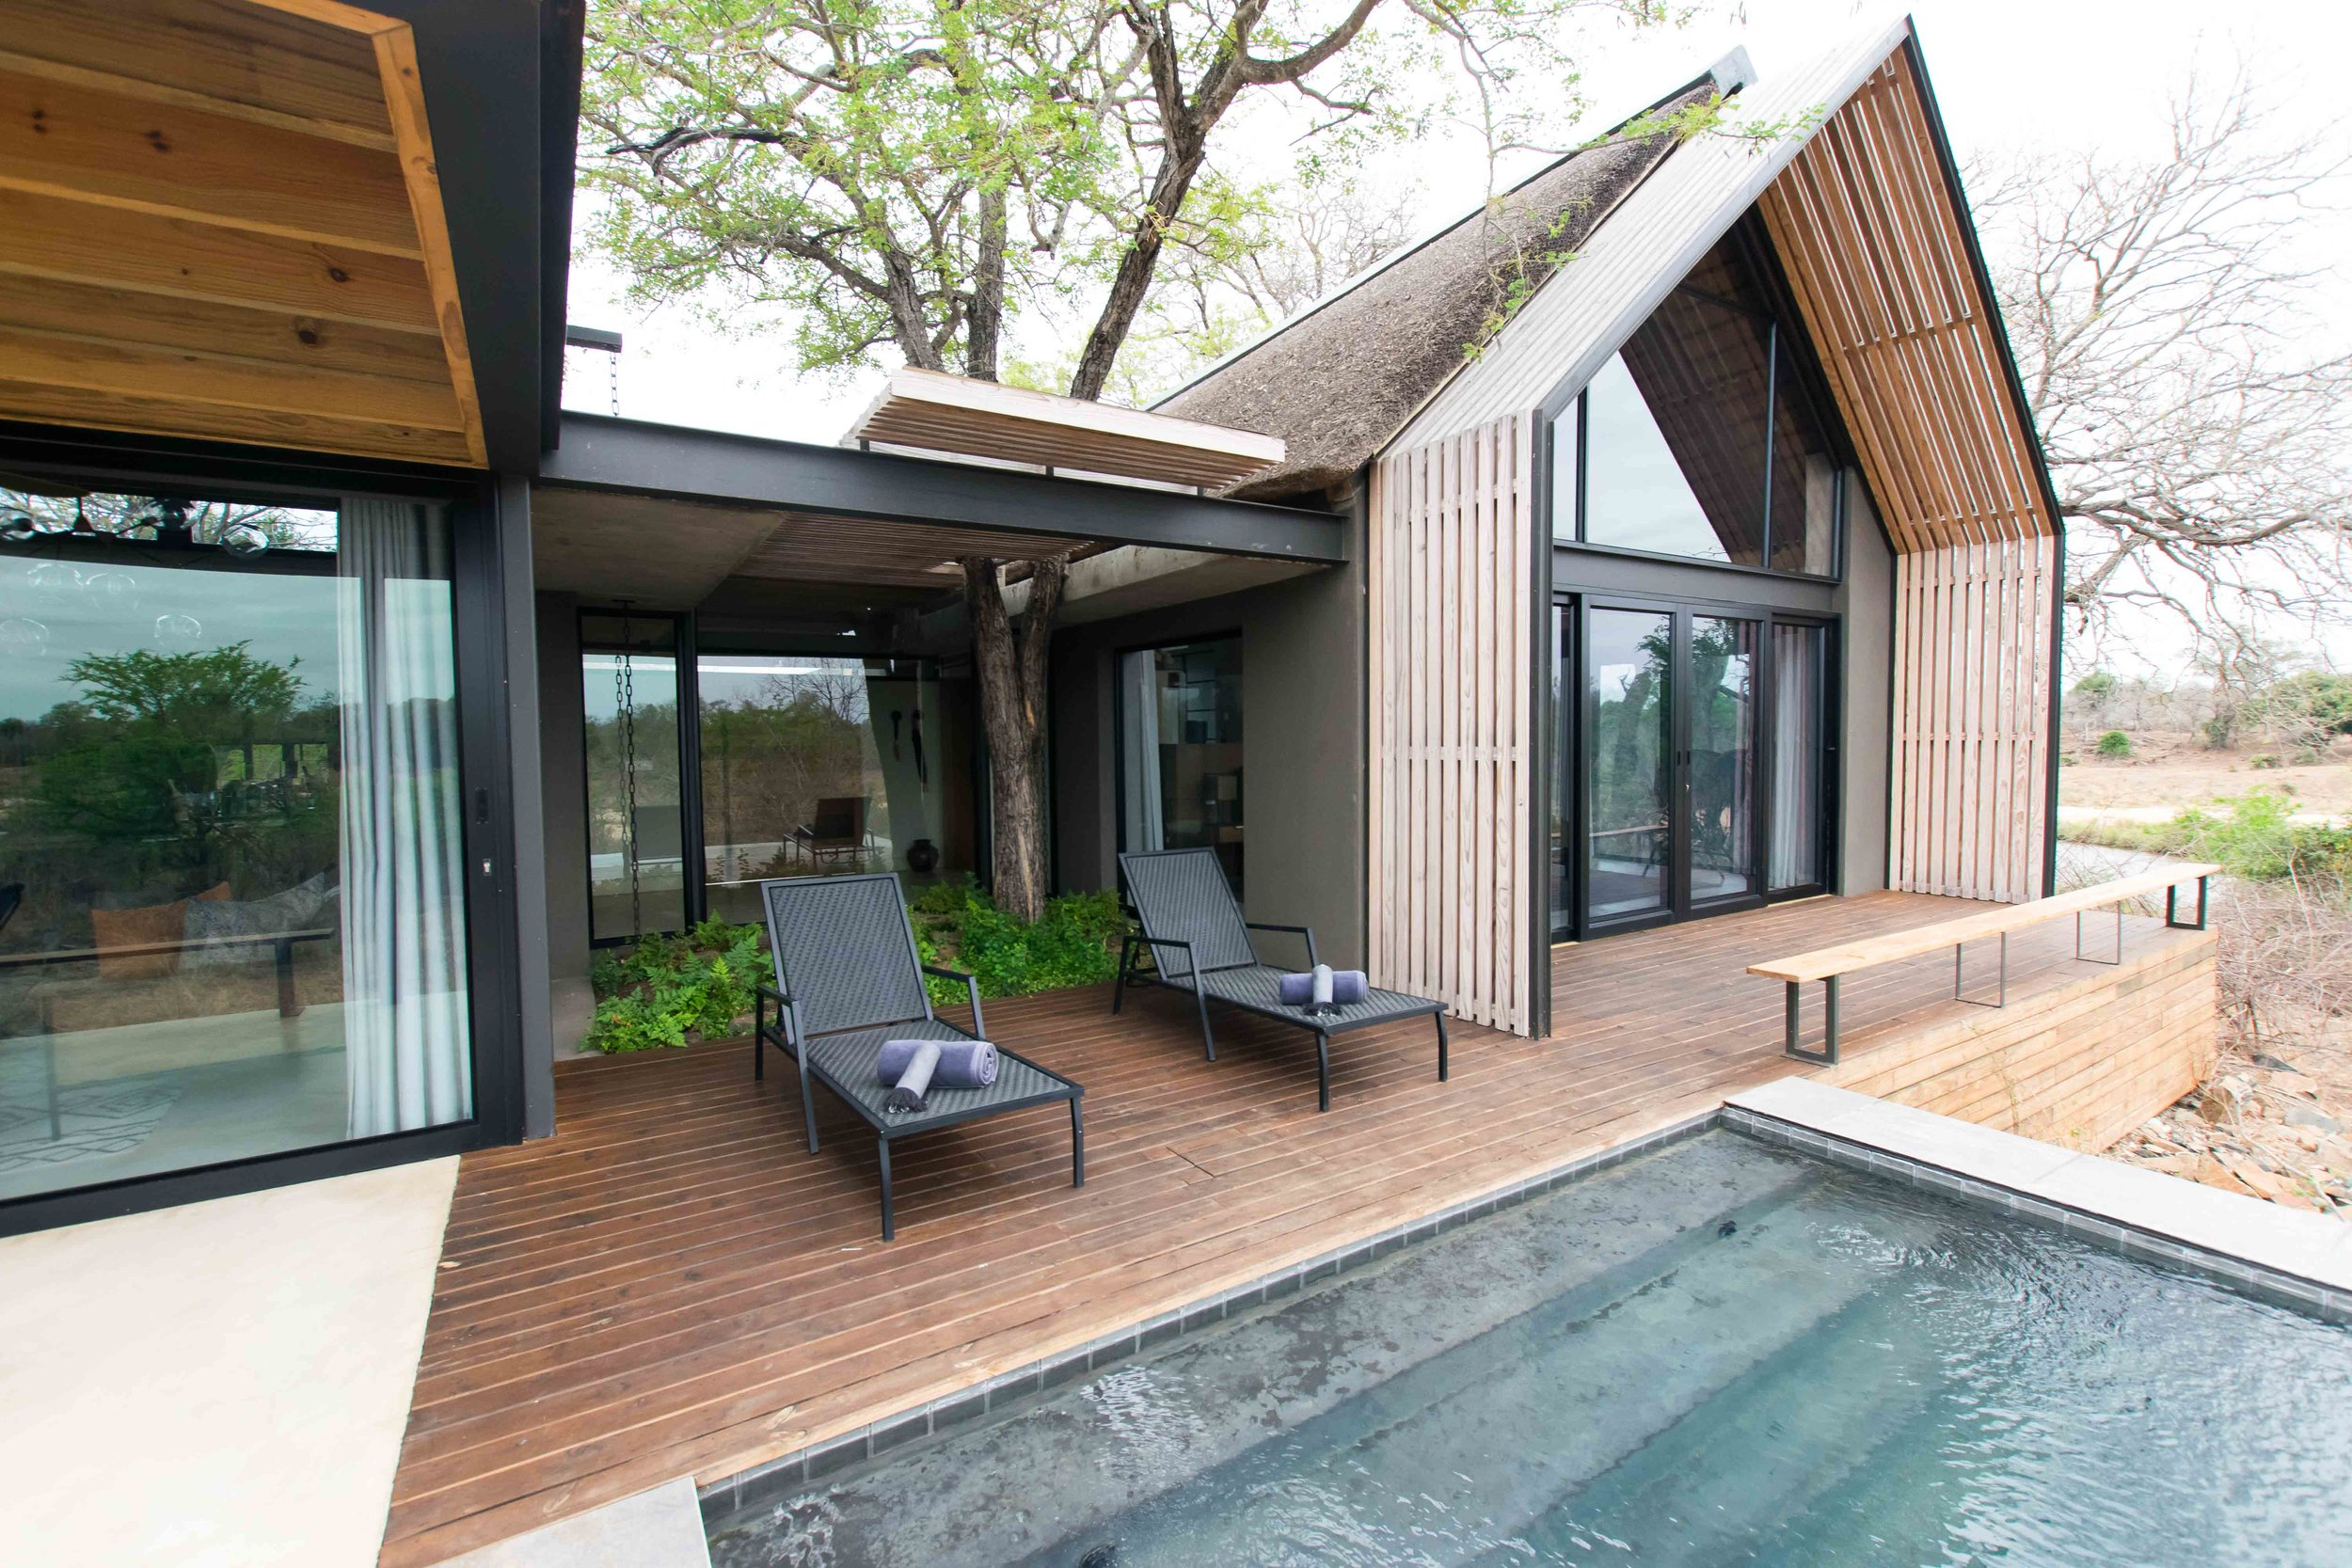 Private plunge pool and deck spaces at Lion Sands Ivory Lodge